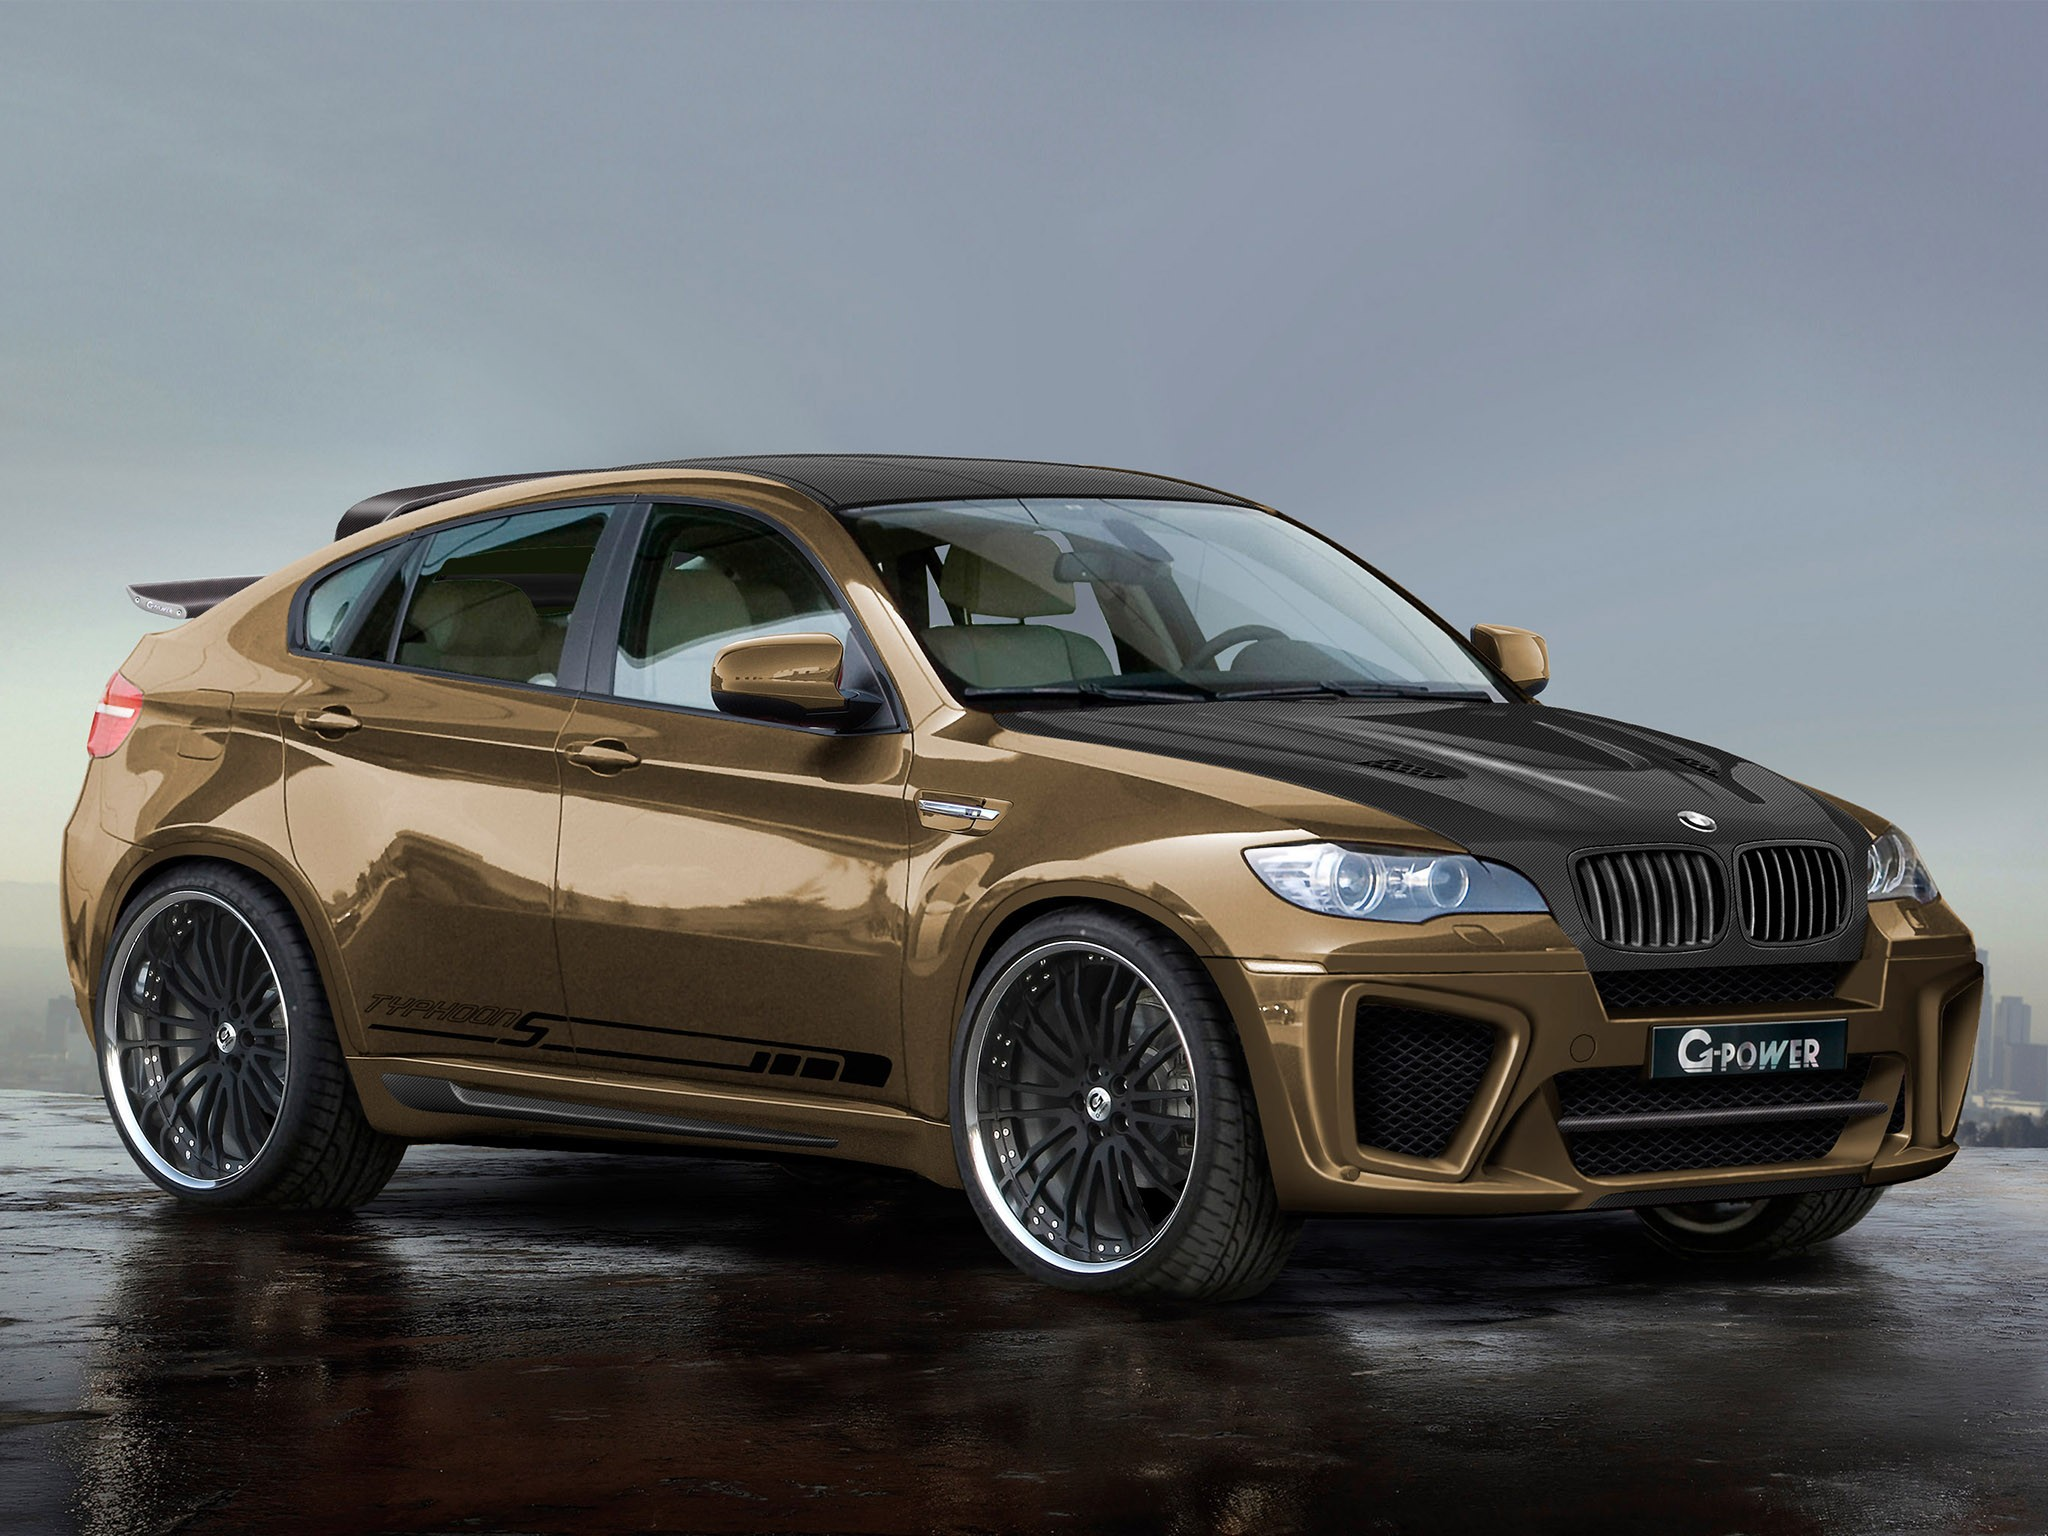 2010 G-power - Bmw X6 M Typhoon